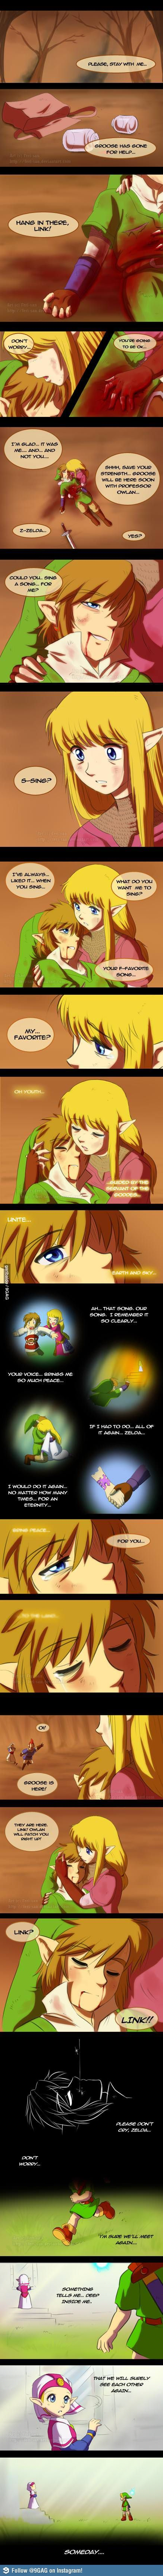 "Link, Zelda, and Groose from Skyward Sword then Link and Zelda from Ocarina of Time - The Legend of Zelda; comic by Ferisae on deviantART, ""We'll meet again"" everytime as sad as before"